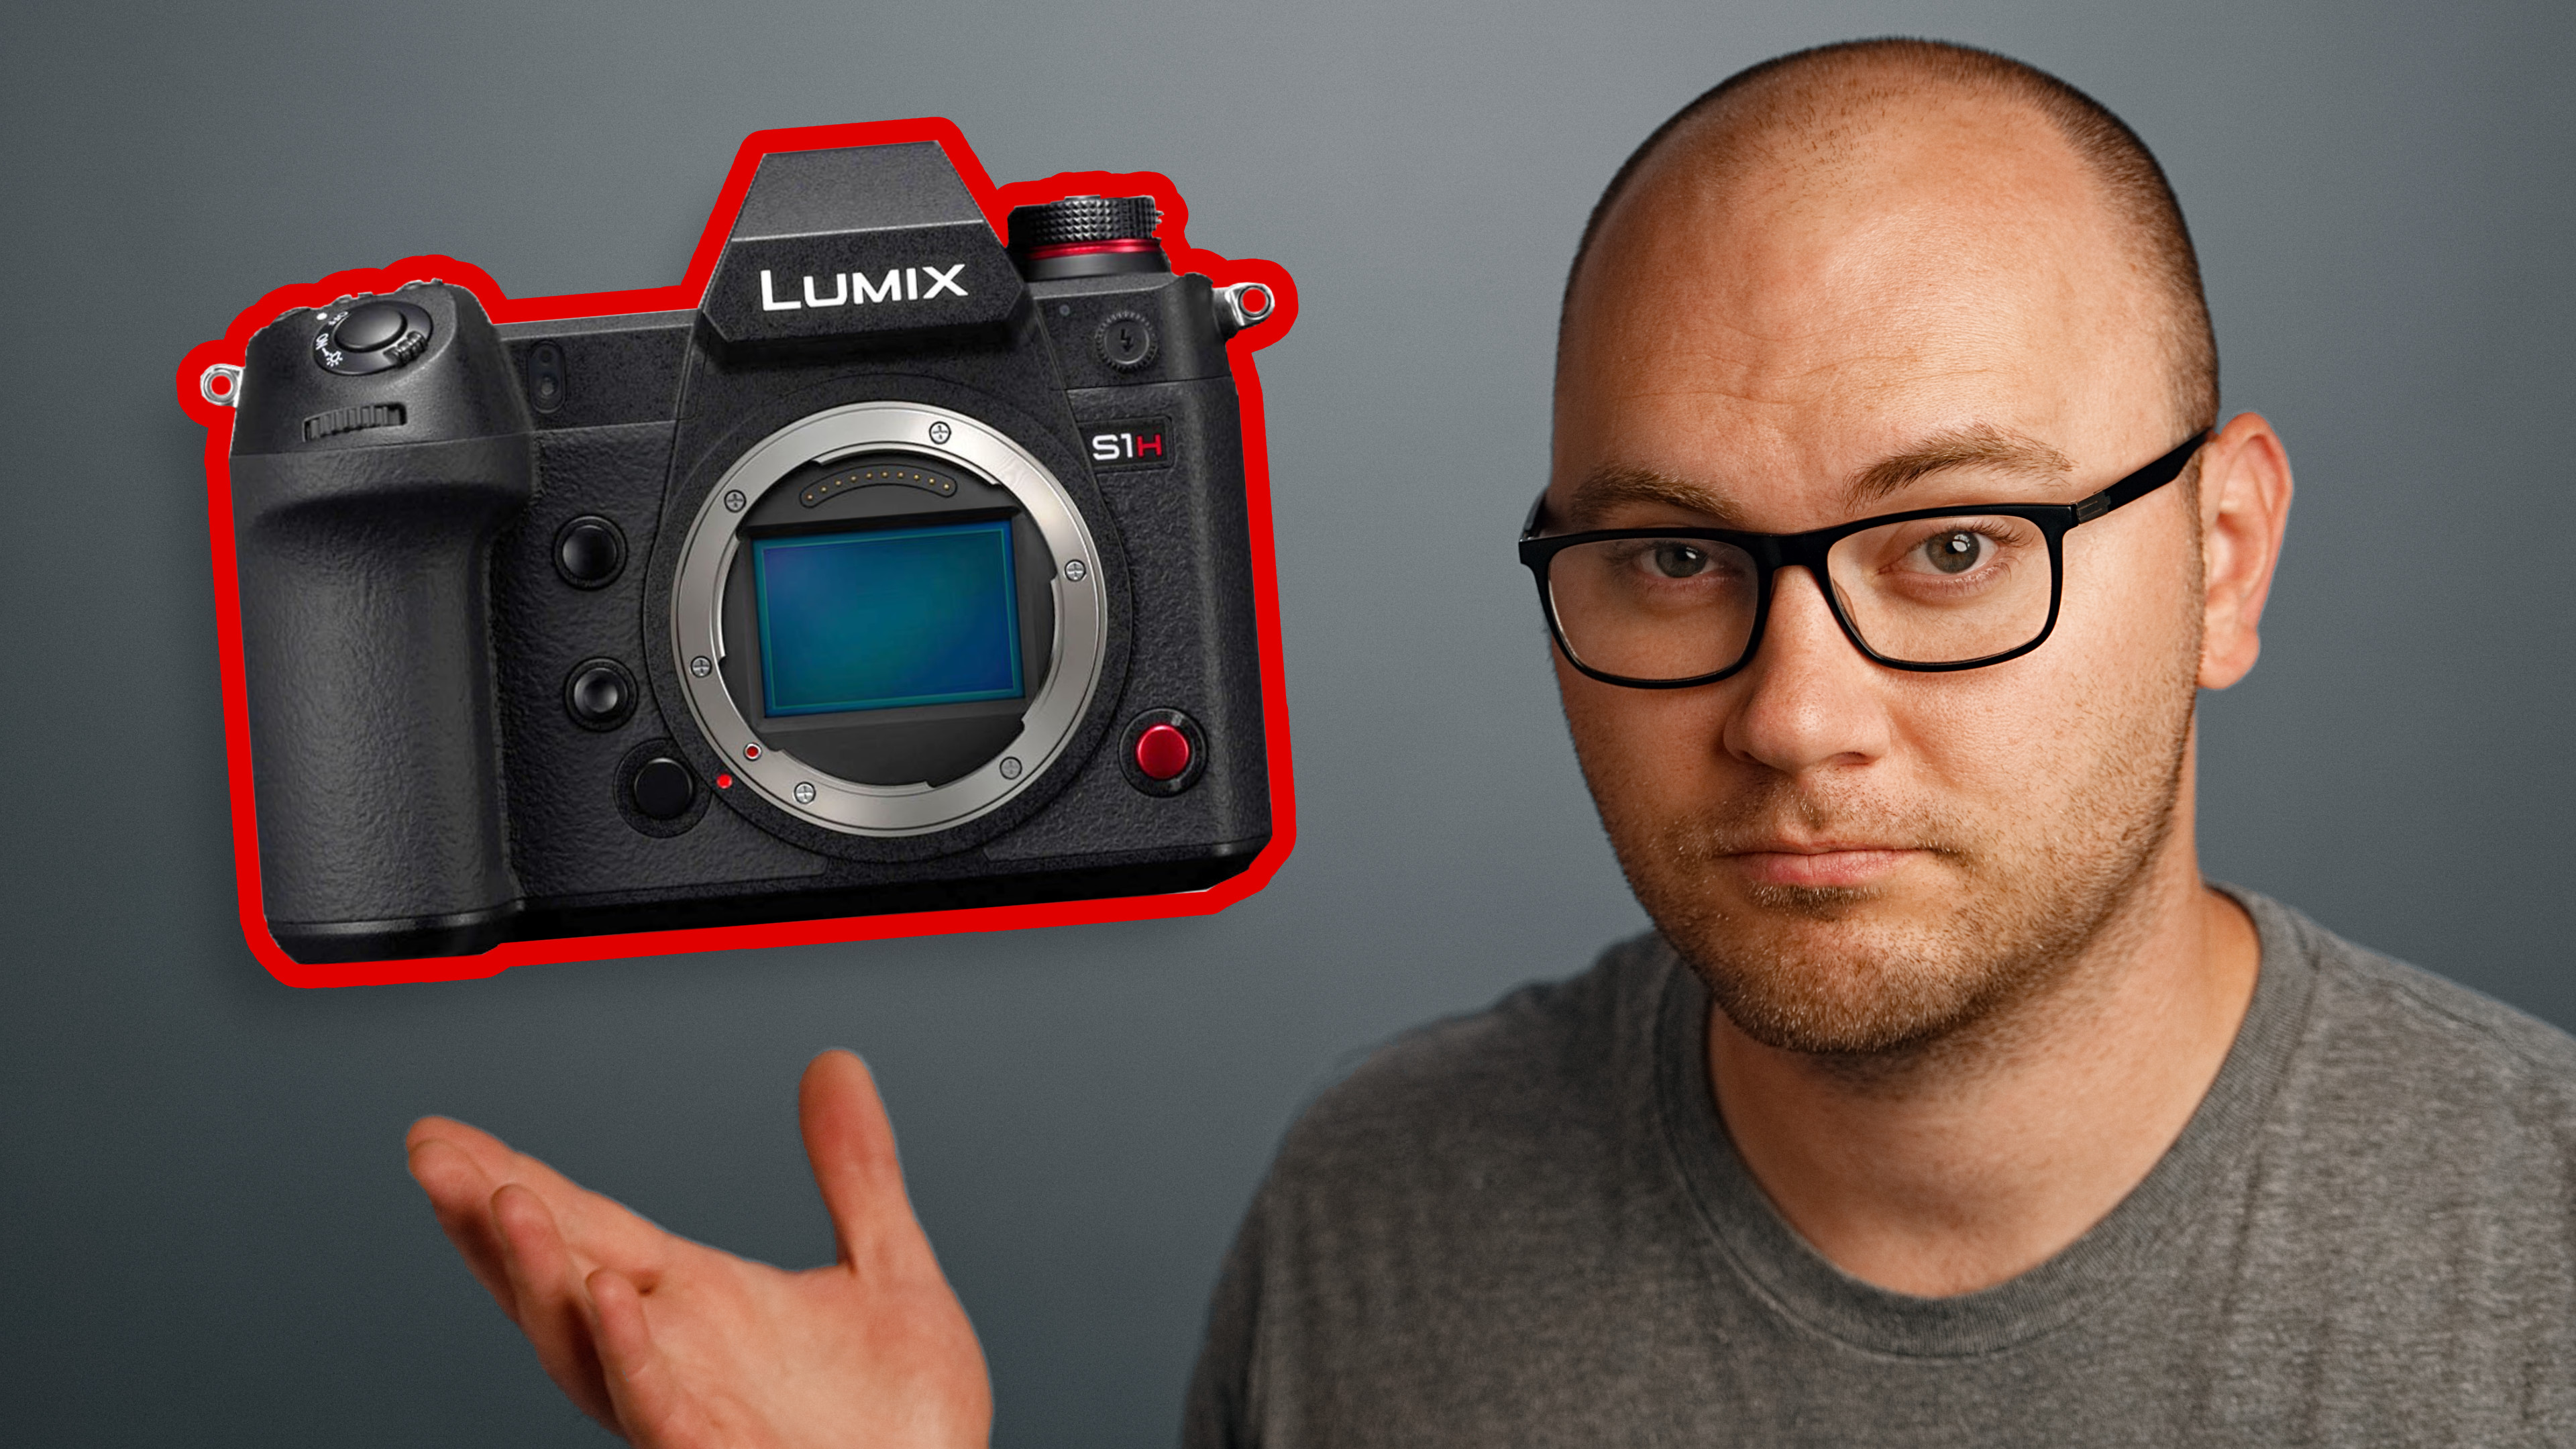 Panasonic S1H: Why This Camera Is Important and What We Need to Know